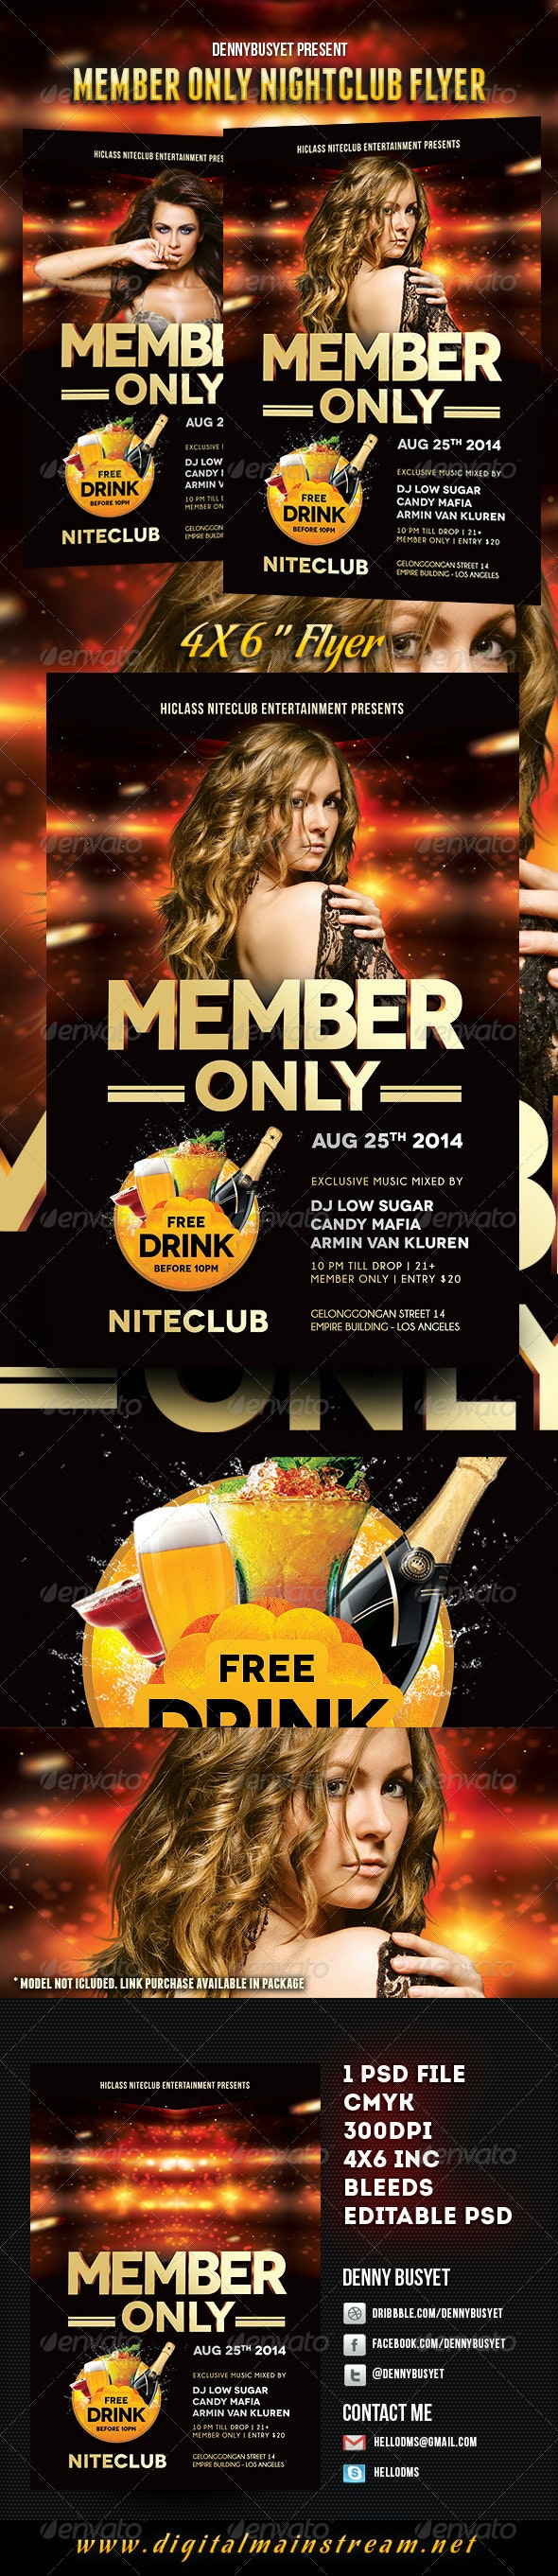 Member Only Nightclub Flyer Template - Events Flyers